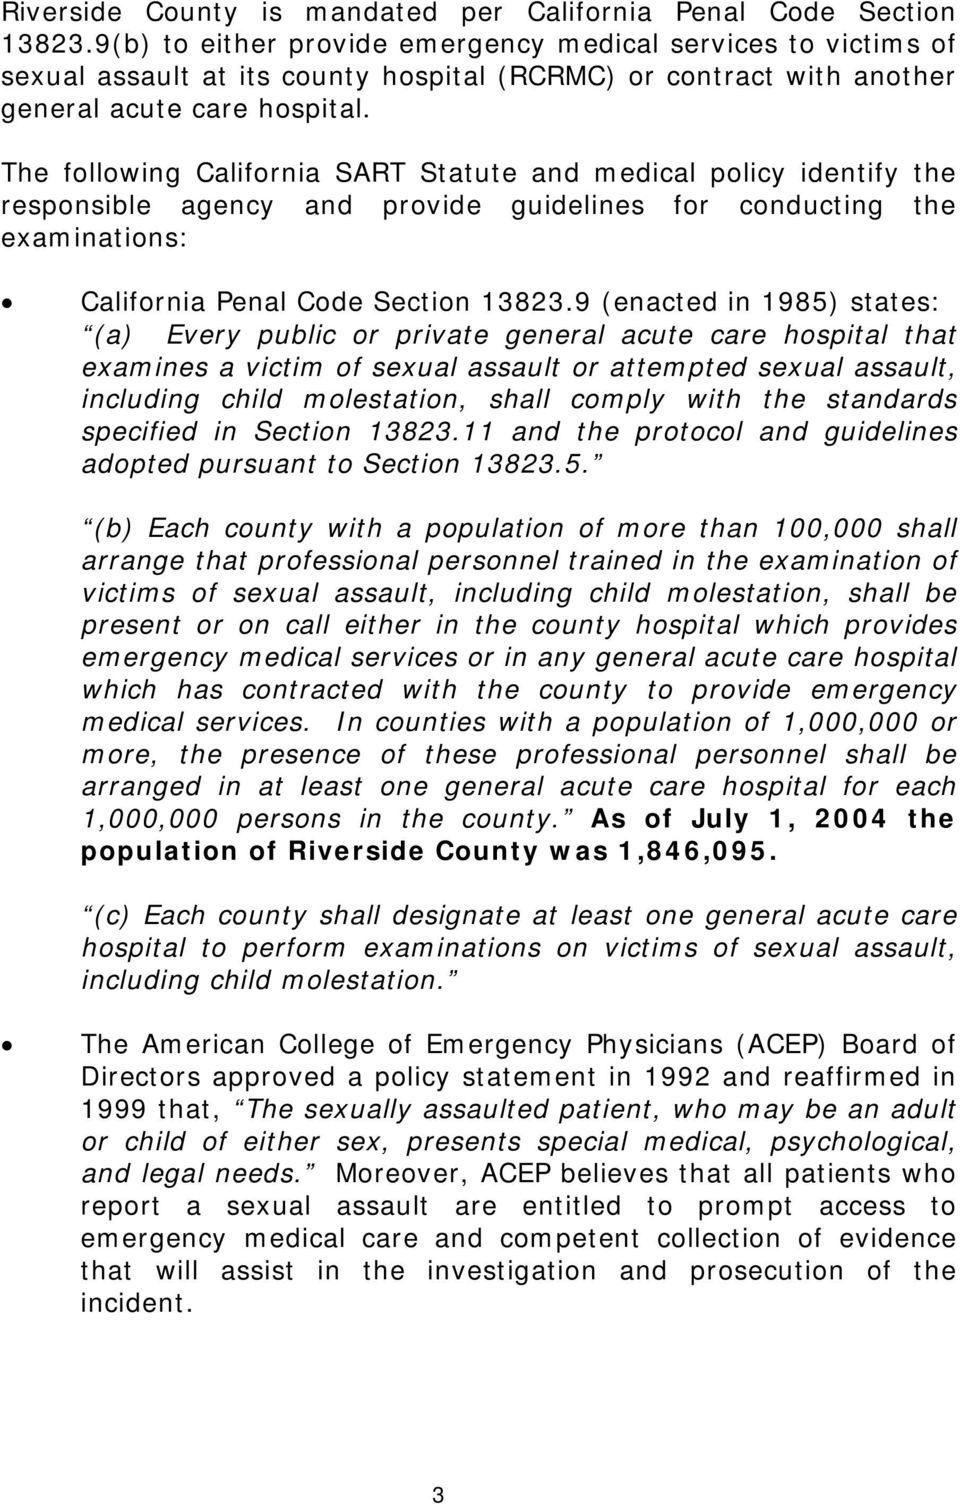 The following California SART Statute and medical policy identify the responsible agency and provide guidelines for conducting the examinations: California Penal Code Section 13823.